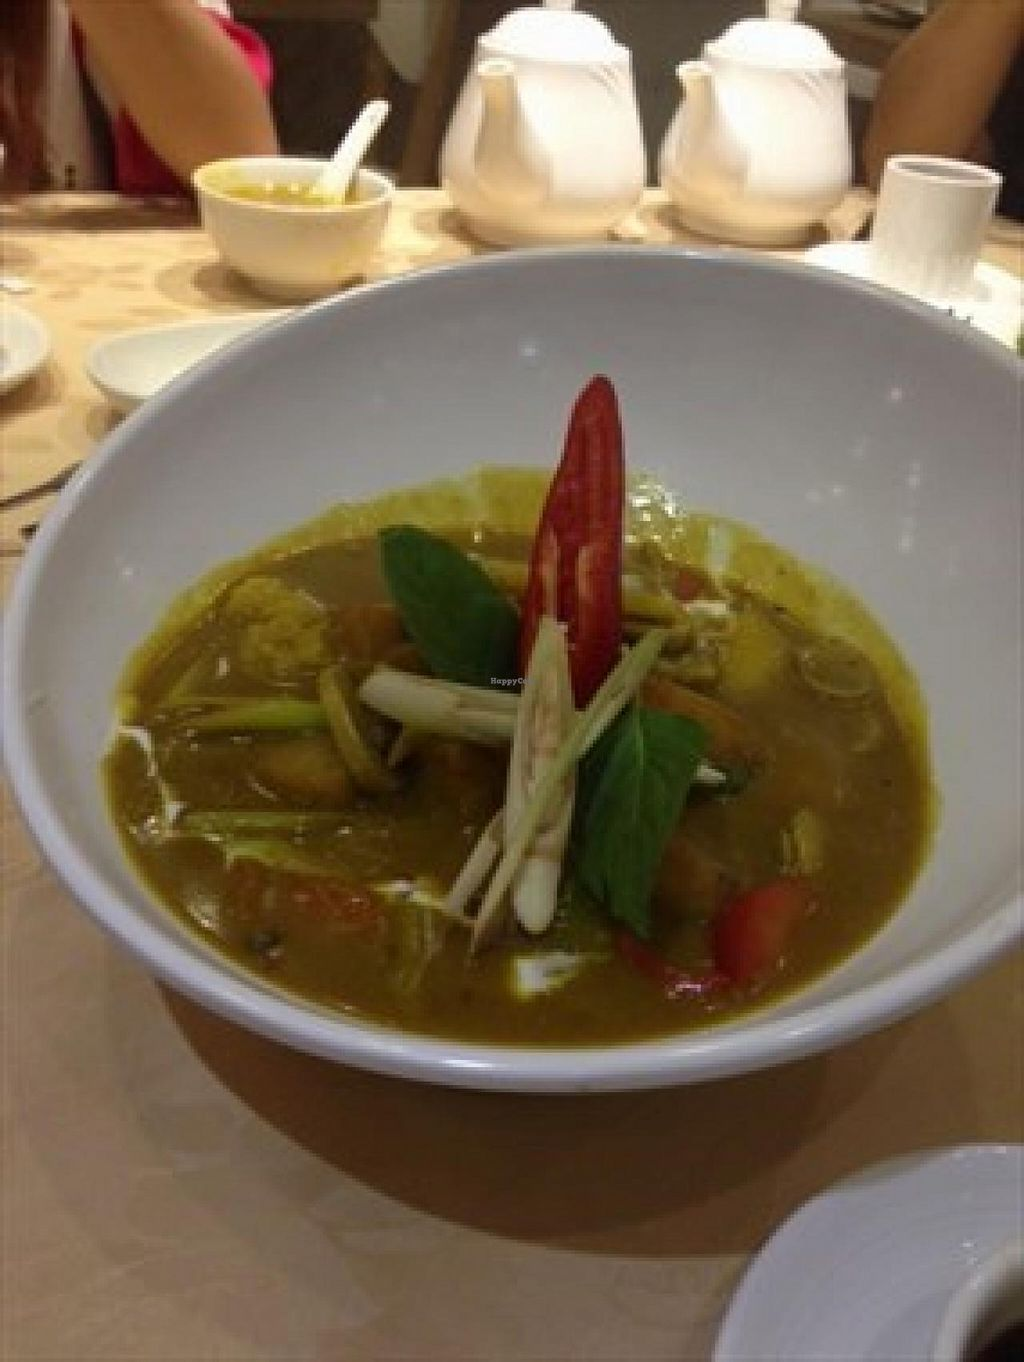 """Photo of CLOSED: Paramita Vegetarian Restaurant - Tin Hau  by <a href=""""/members/profile/Stevie"""">Stevie</a> <br/>3 <br/> May 28, 2015  - <a href='/contact/abuse/image/11352/103783'>Report</a>"""